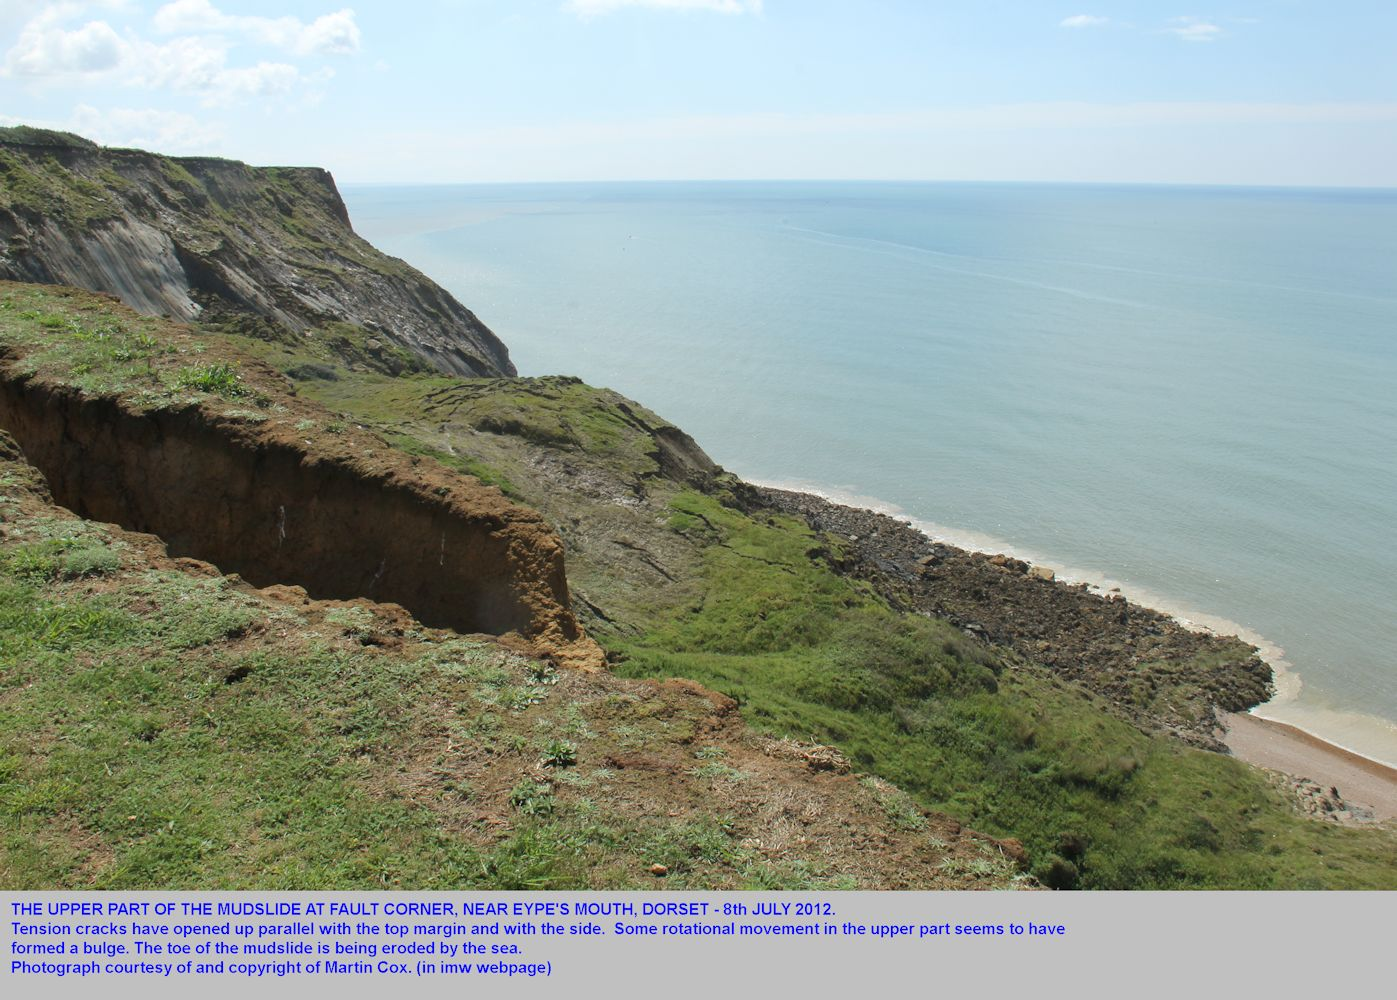 The upper part of the mudslide at Eype's Mouth, near Bridport, Dorset, with tension cracks, photographed by Martin Cox